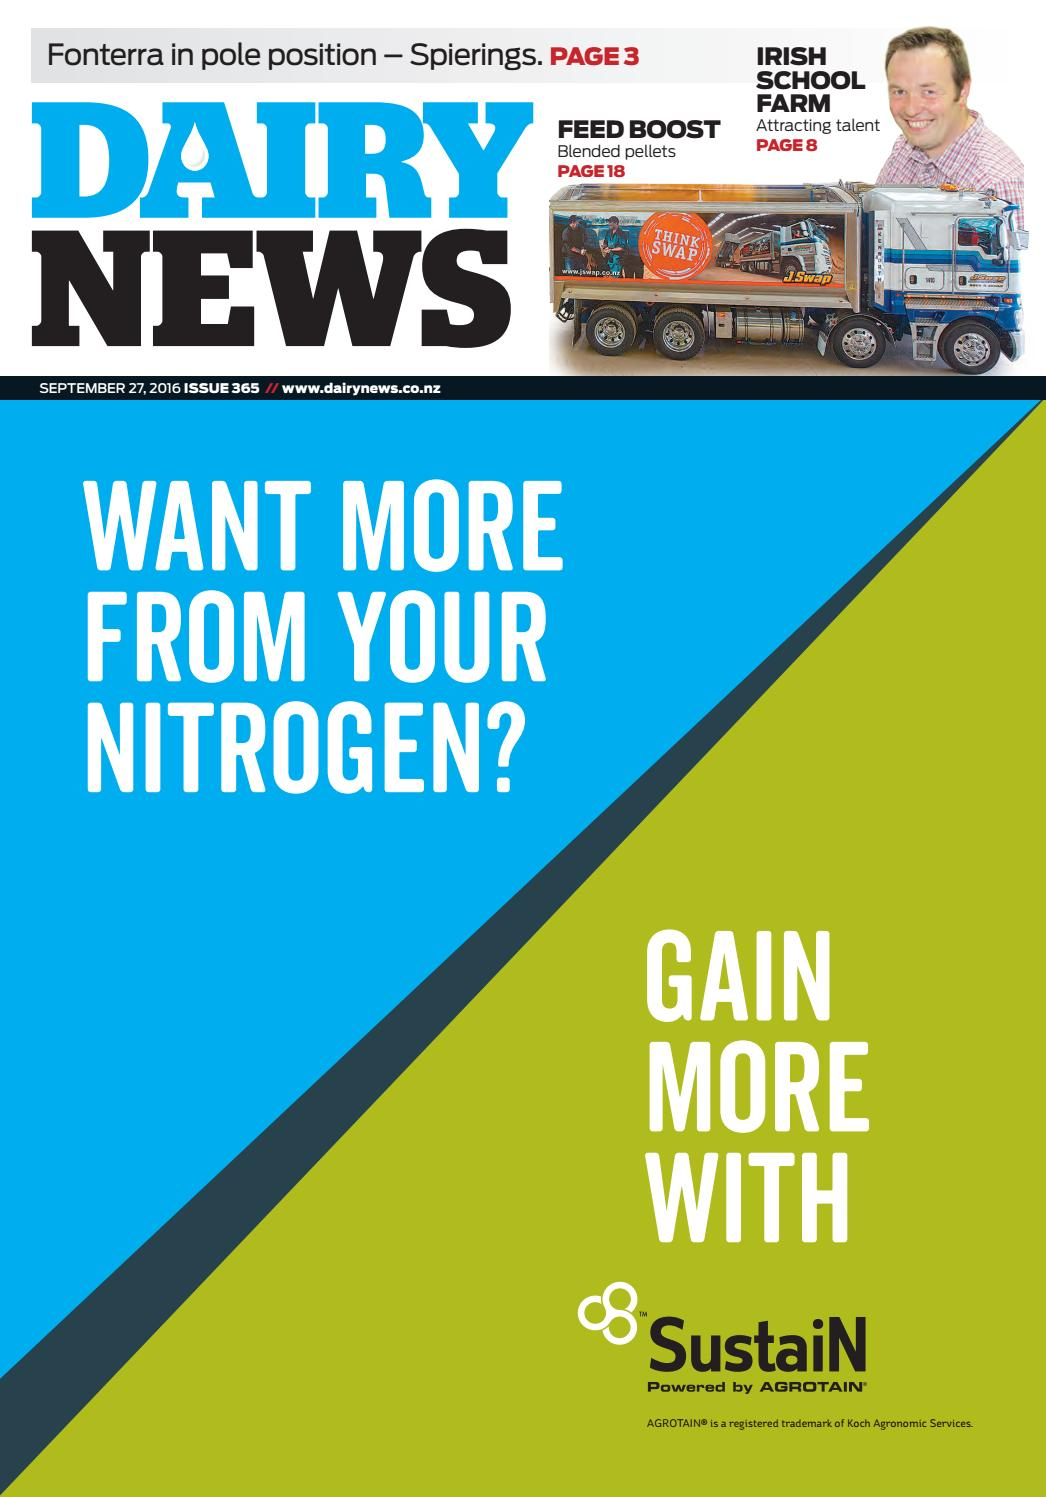 Dairy News 27 September 2016 by Rural NewsGroup - issuu